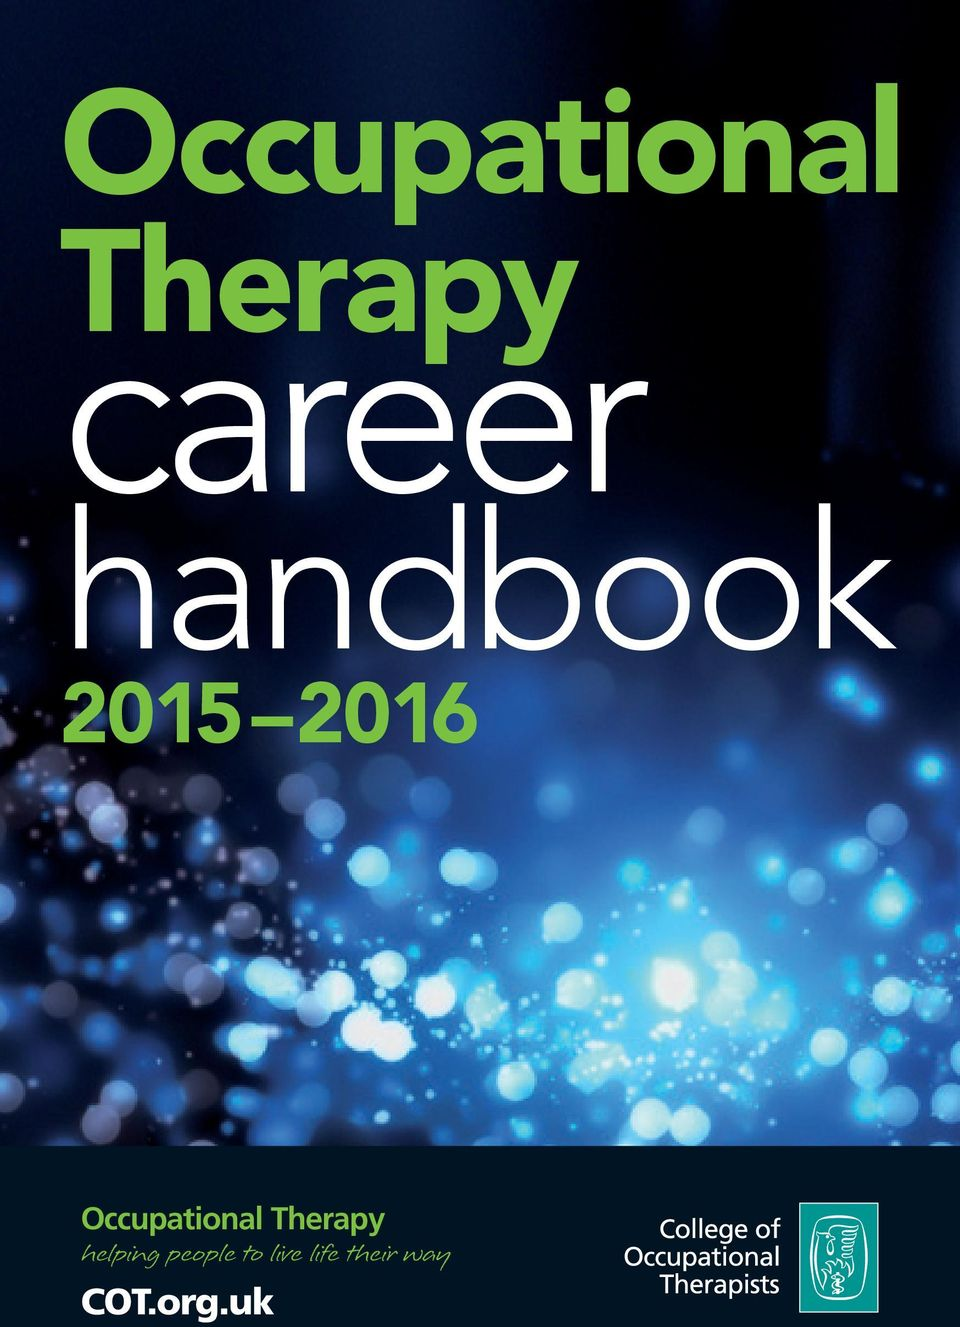 Occupational Therapy helping